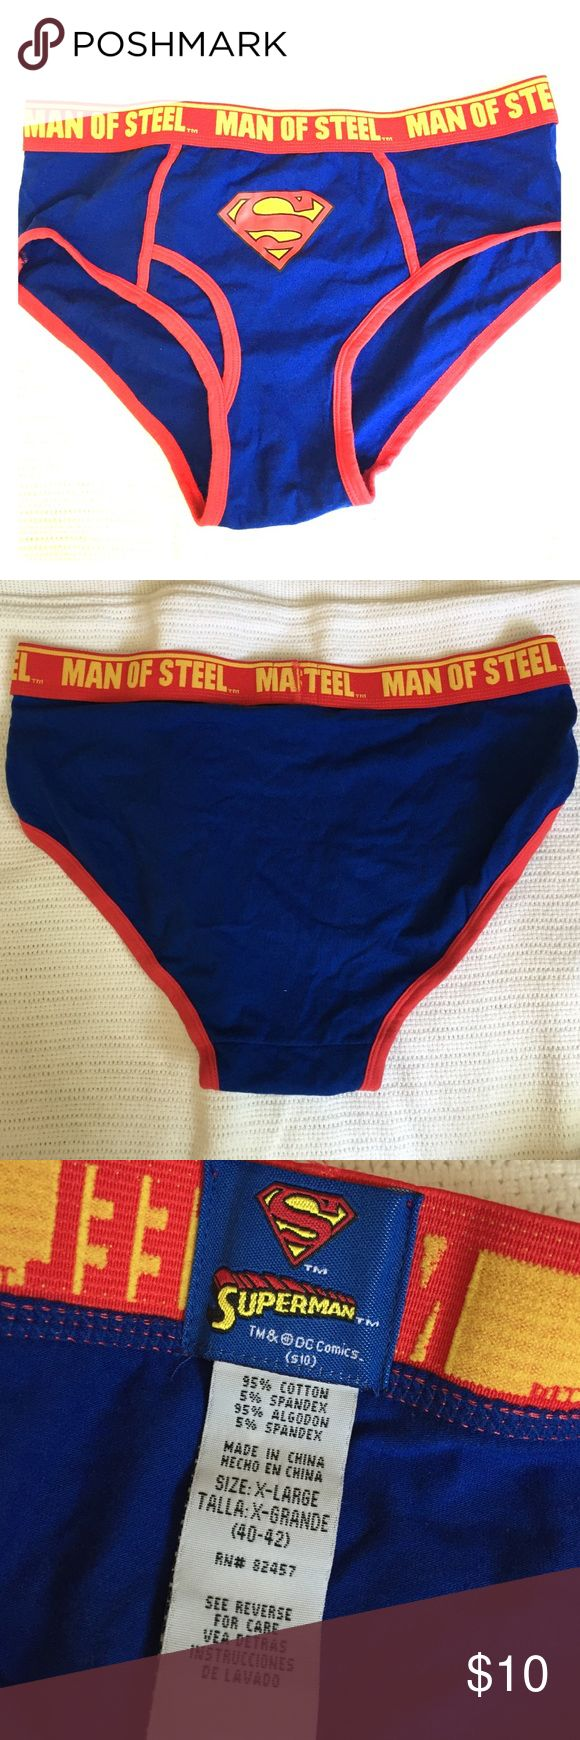 Superman underwear Only used once as a costume prop. So if you're looking to be Man of Steel for Halloween, this is it! Underwear & Socks Briefs